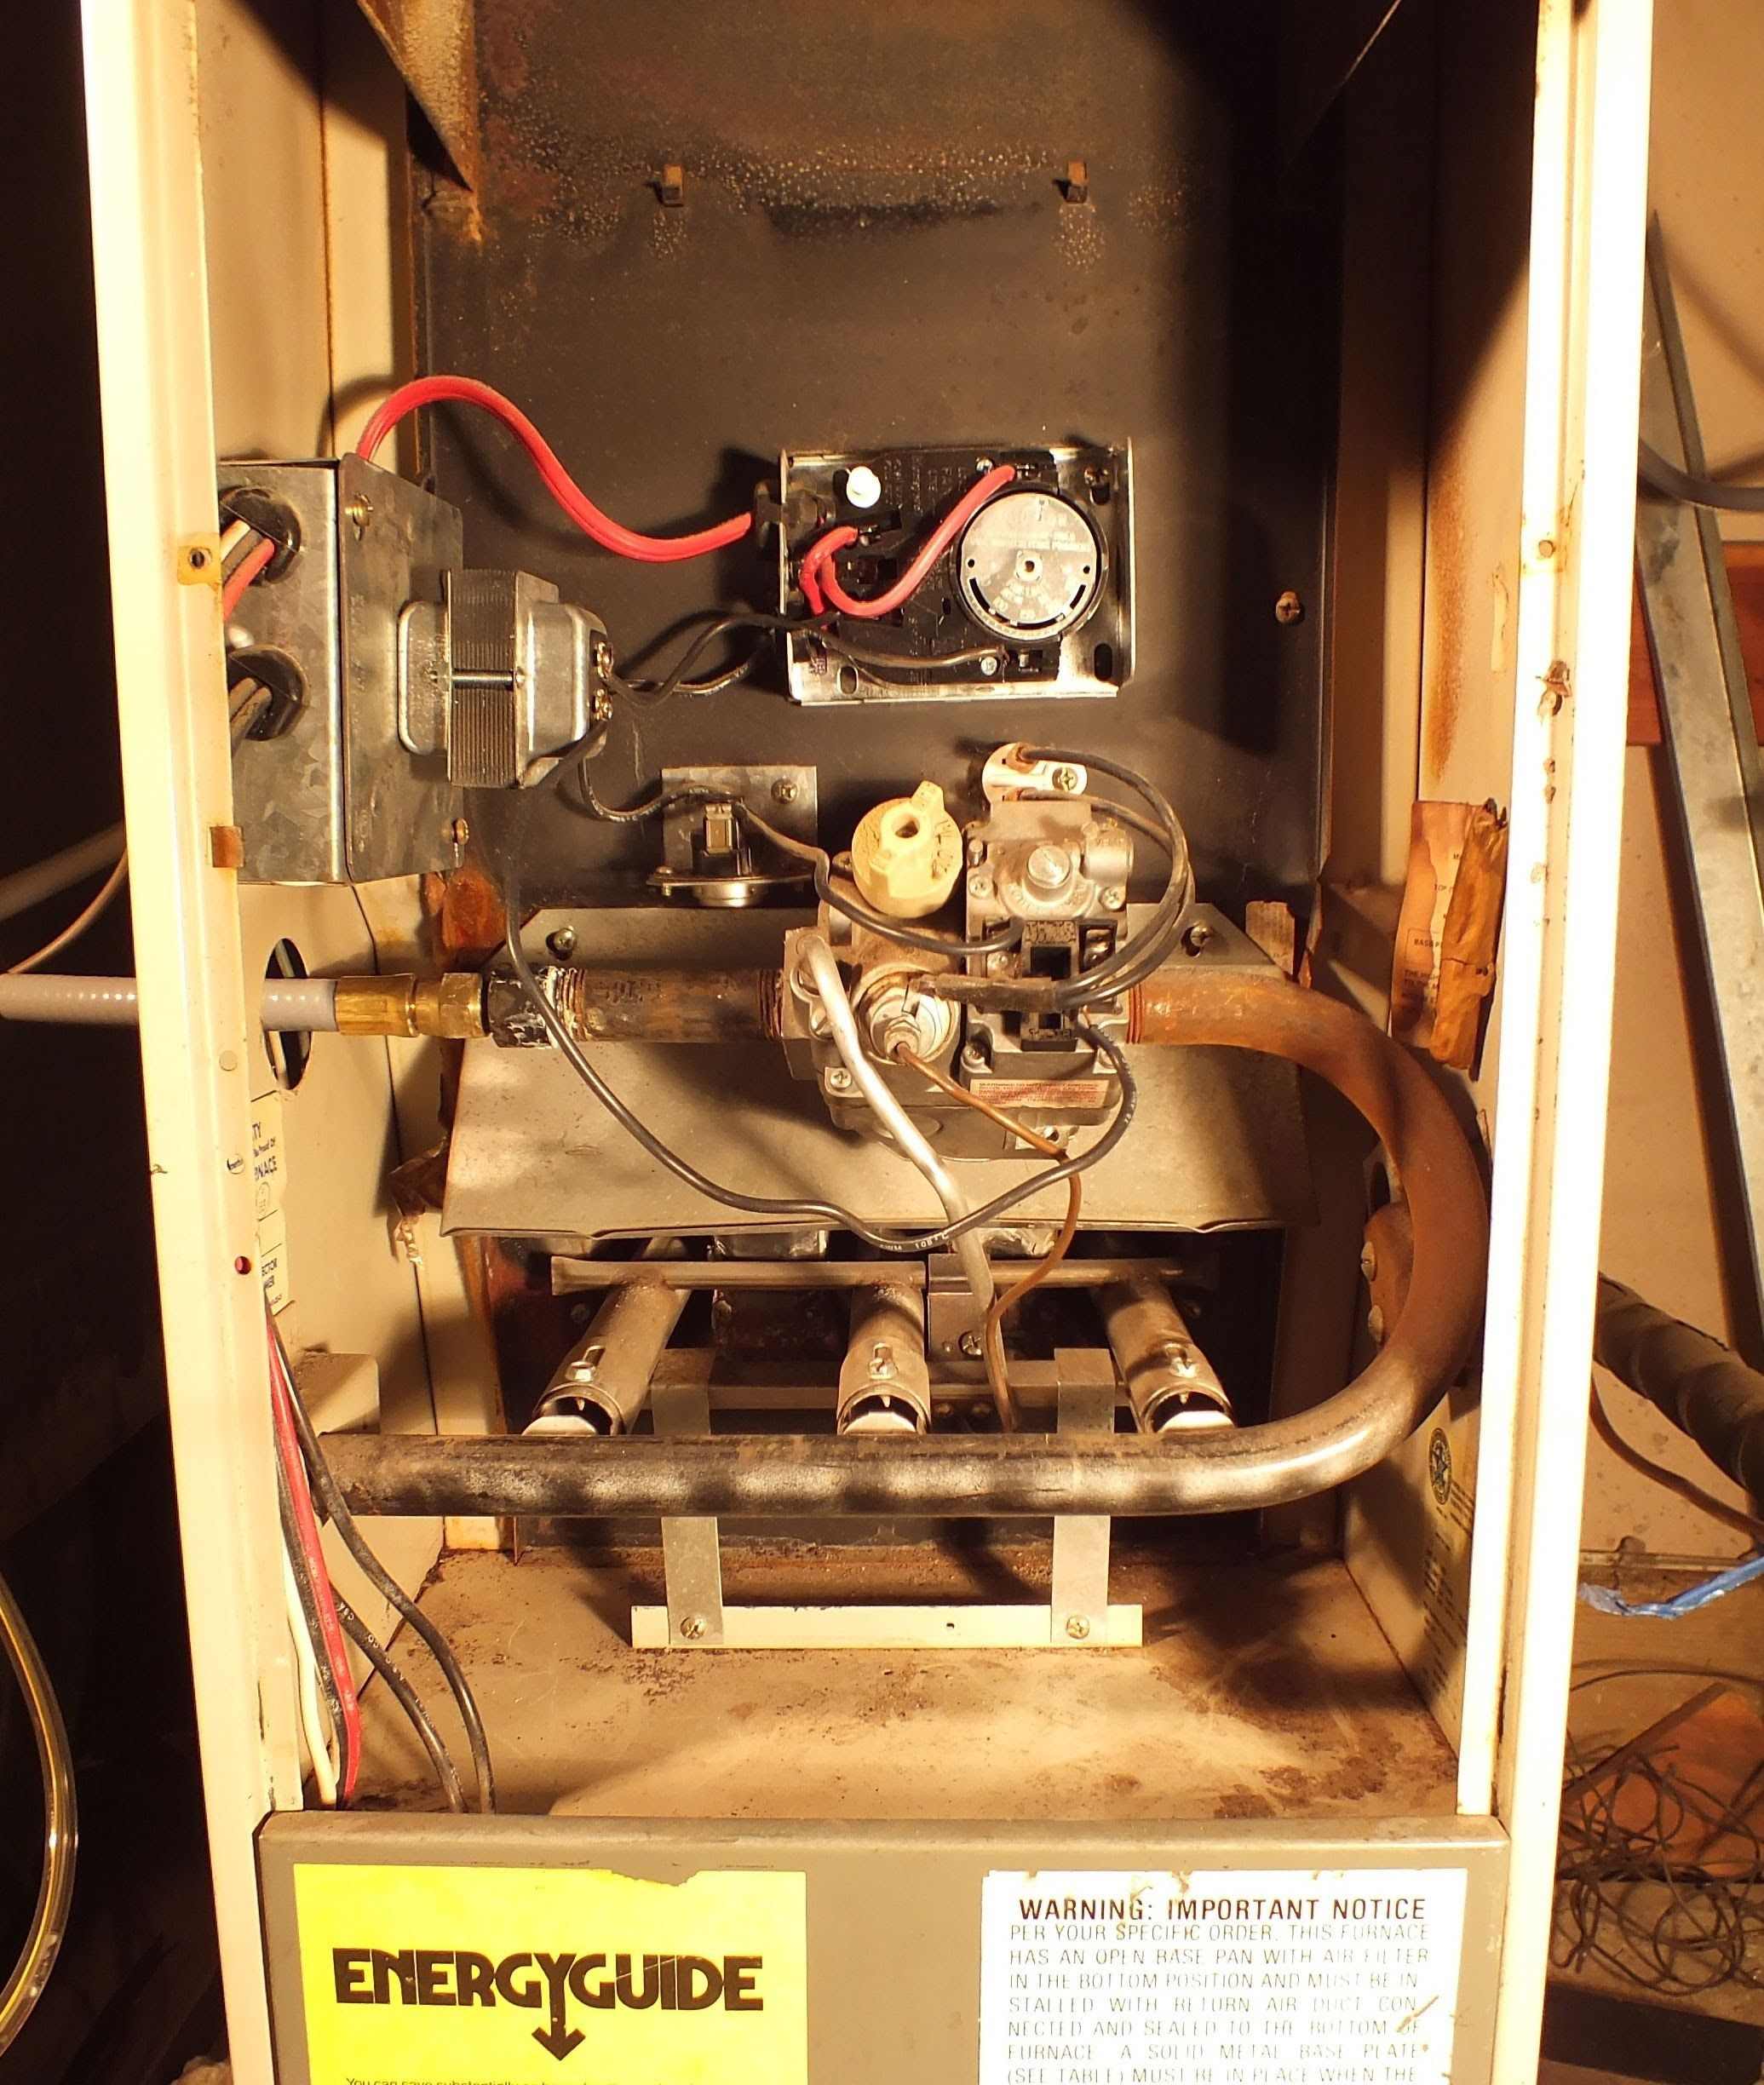 How To Relight The Pilot On The Gas Furnace Heating